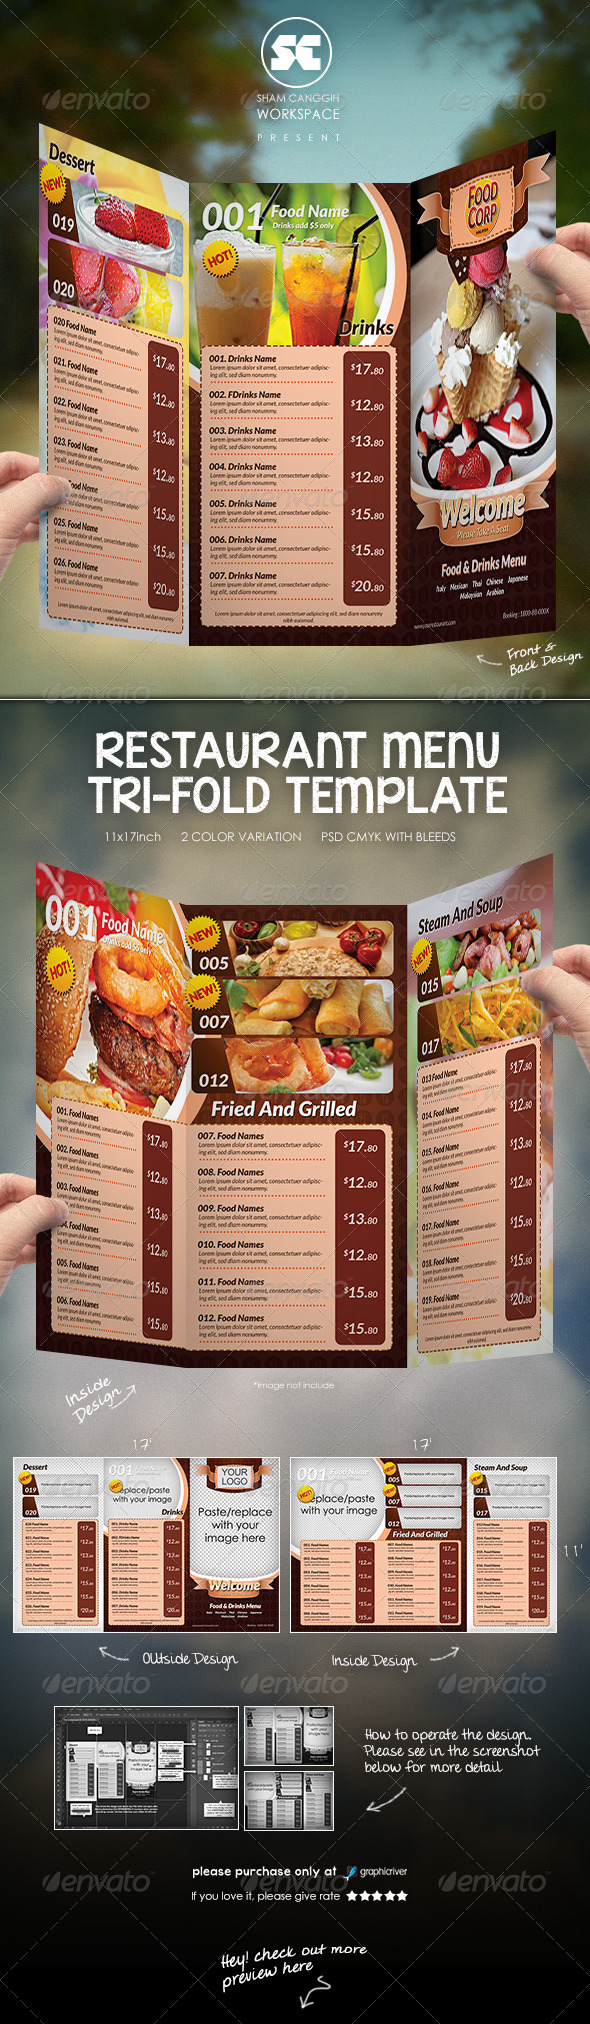 Tri-Fold Restaurant Menu Template - Food Menus Print Templates